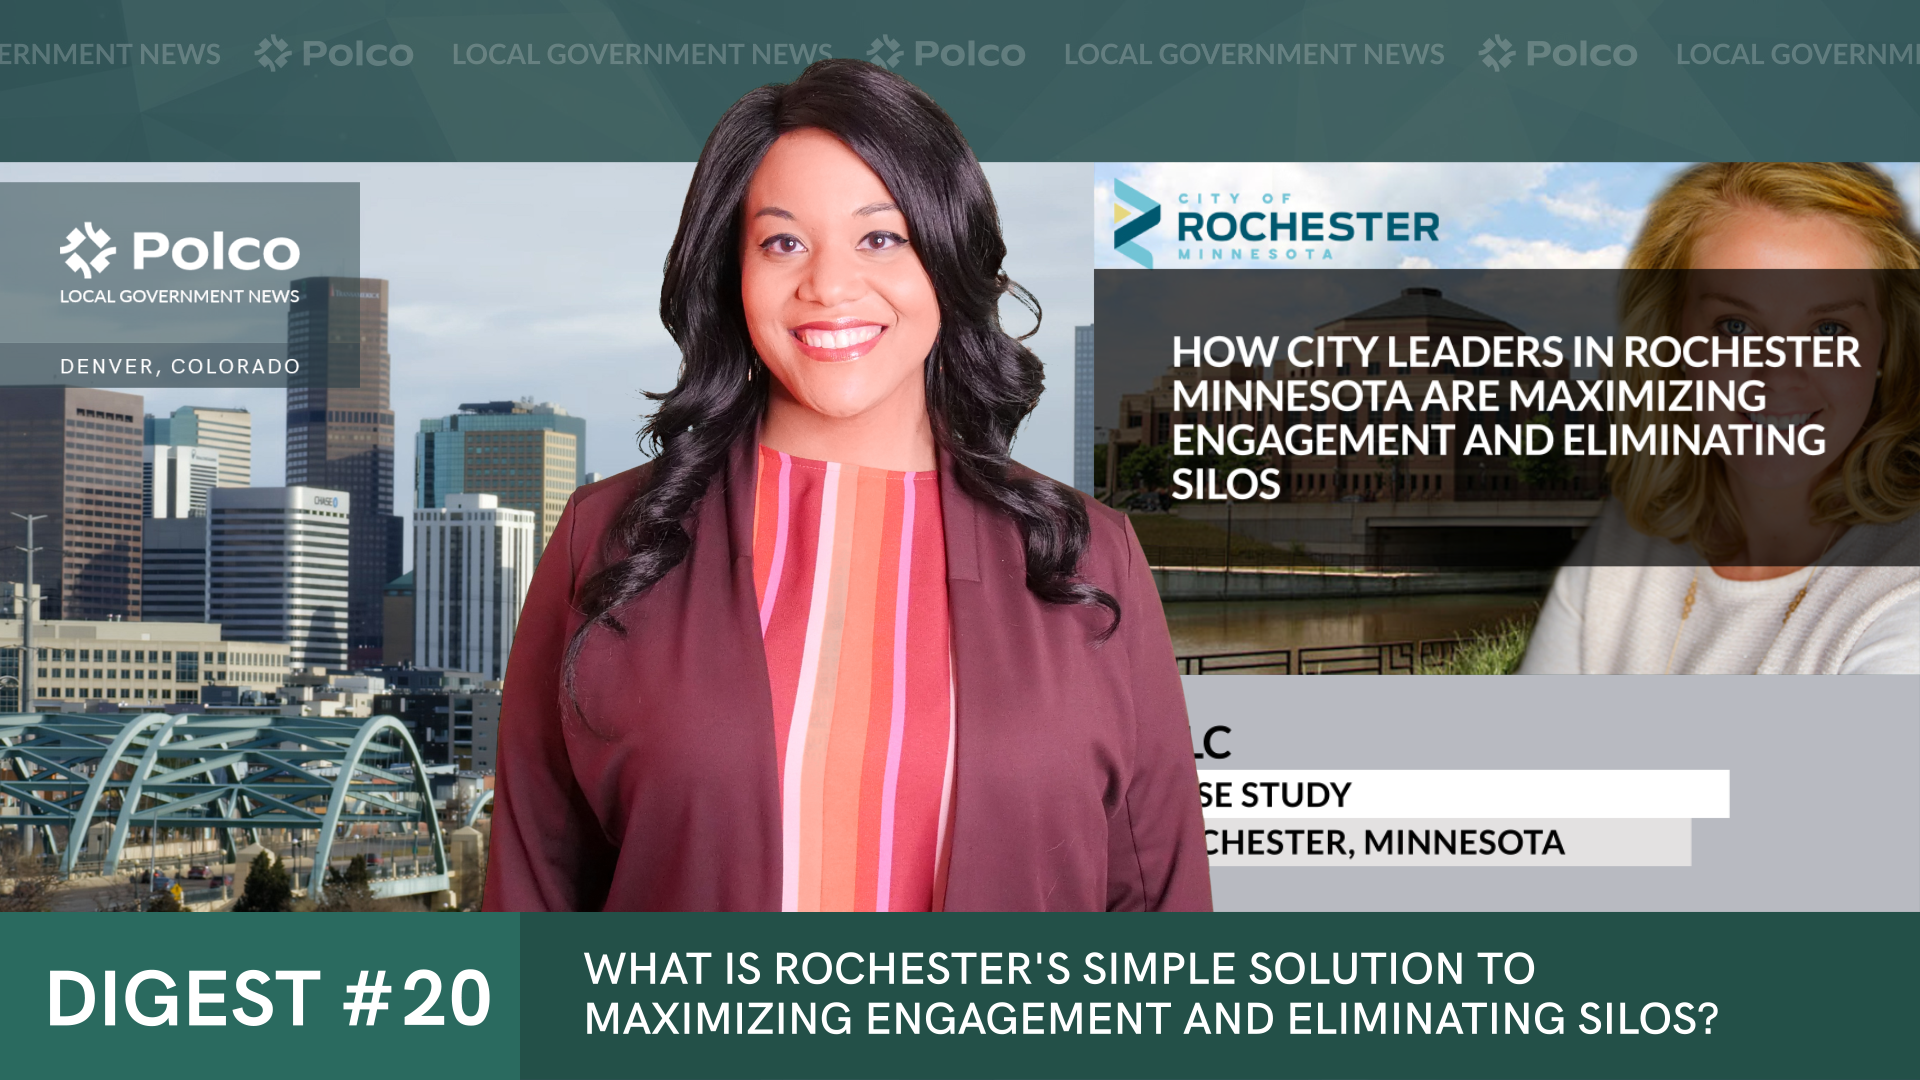 What Is Rochester's Simple Solution To Maximizing Engagement & Eliminating Silos?